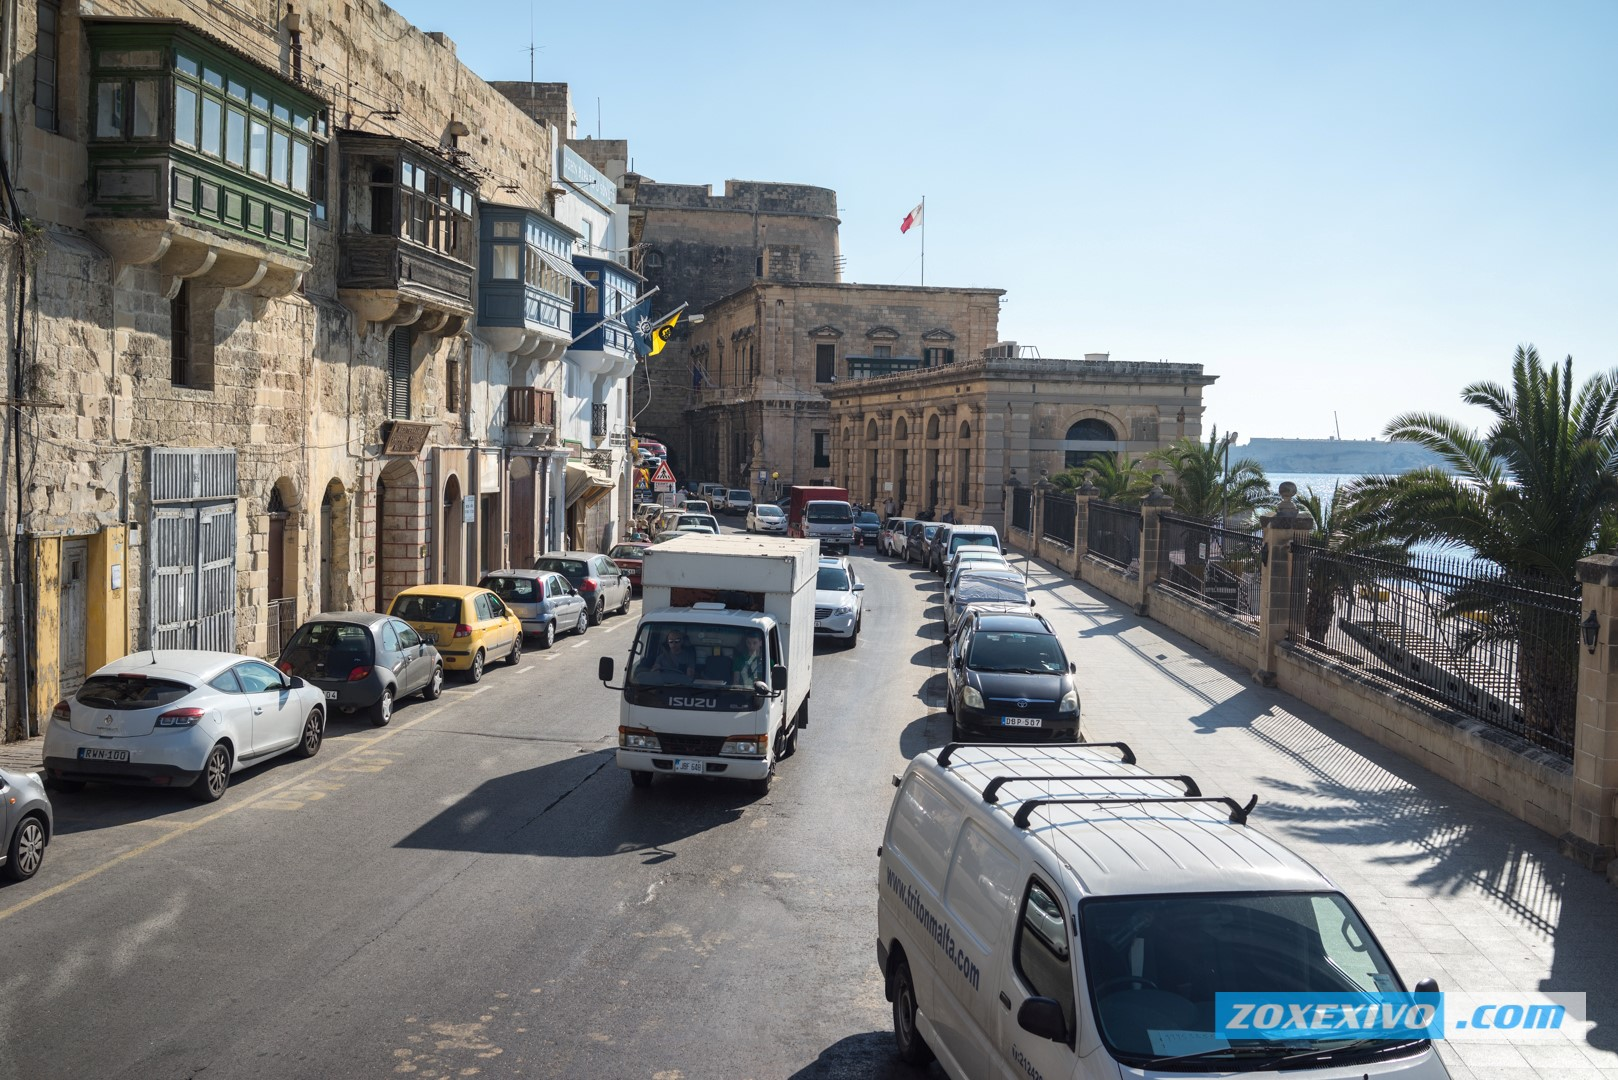 Malta photoreport - 5